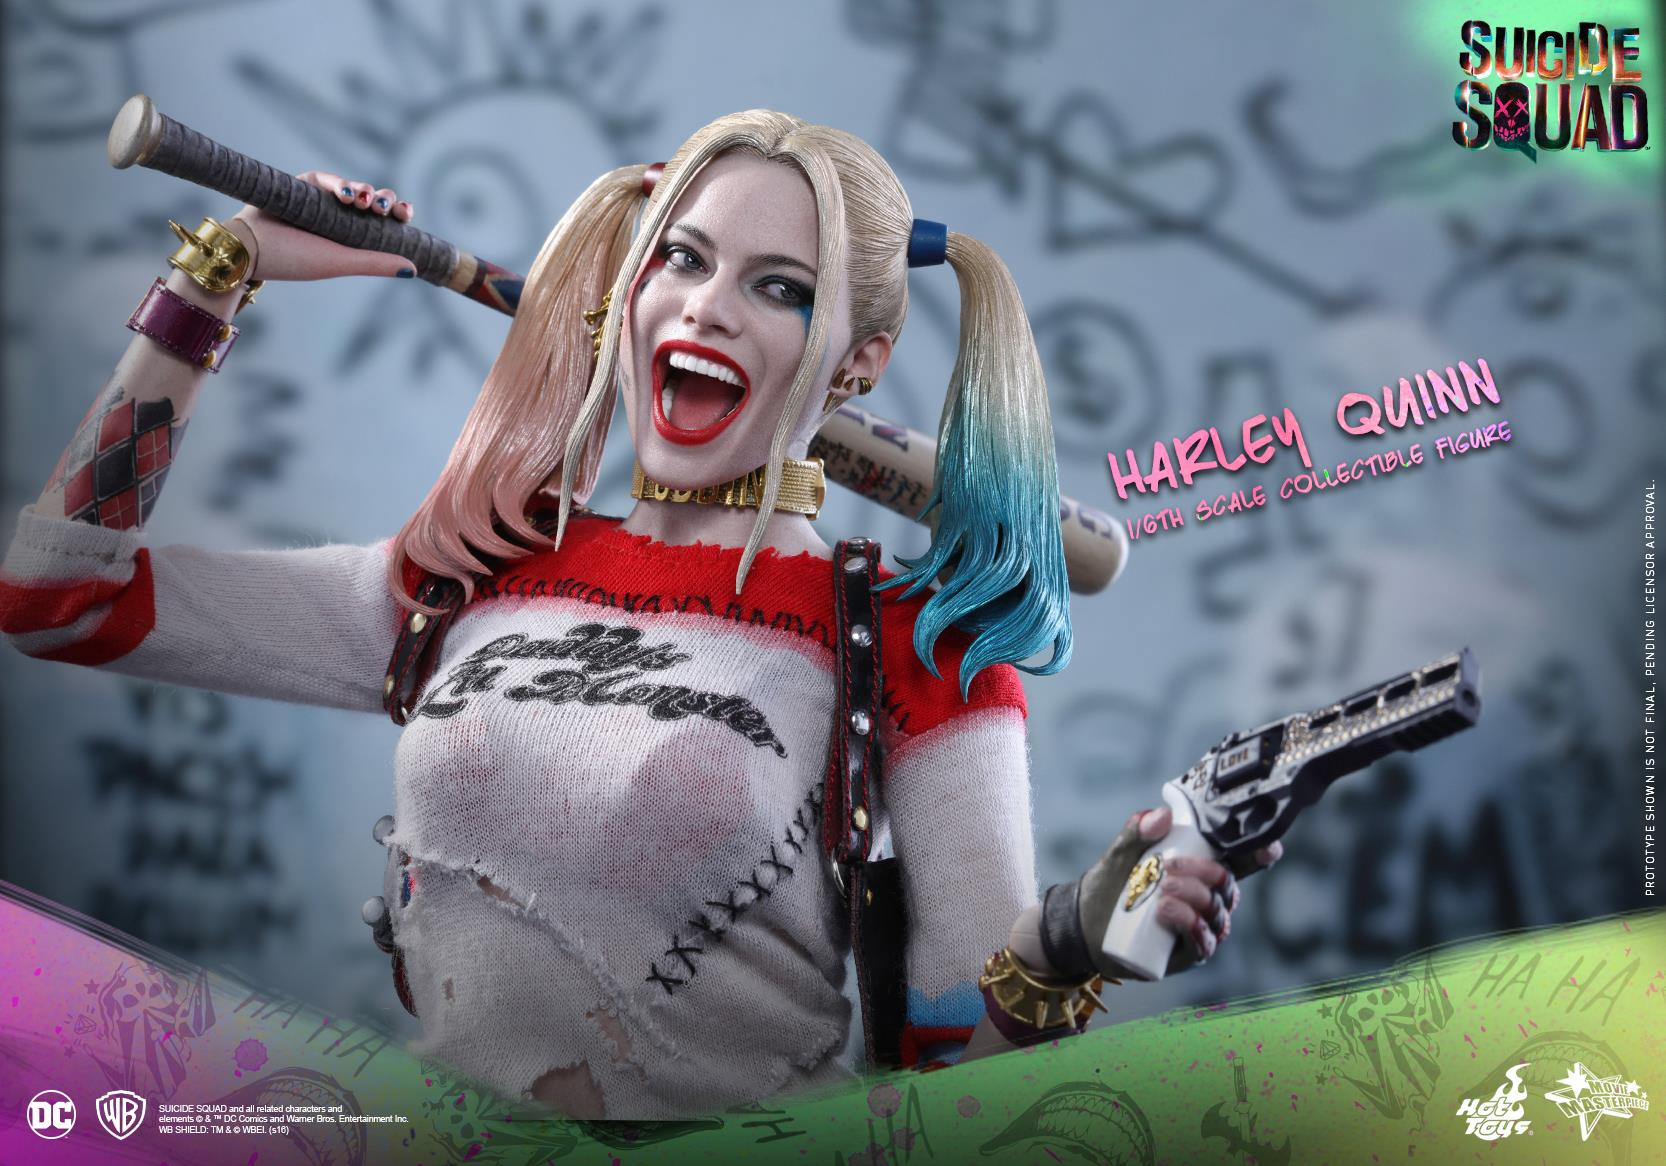 Hot-Toys-Suicide-Squad-Harley-Quinn-15